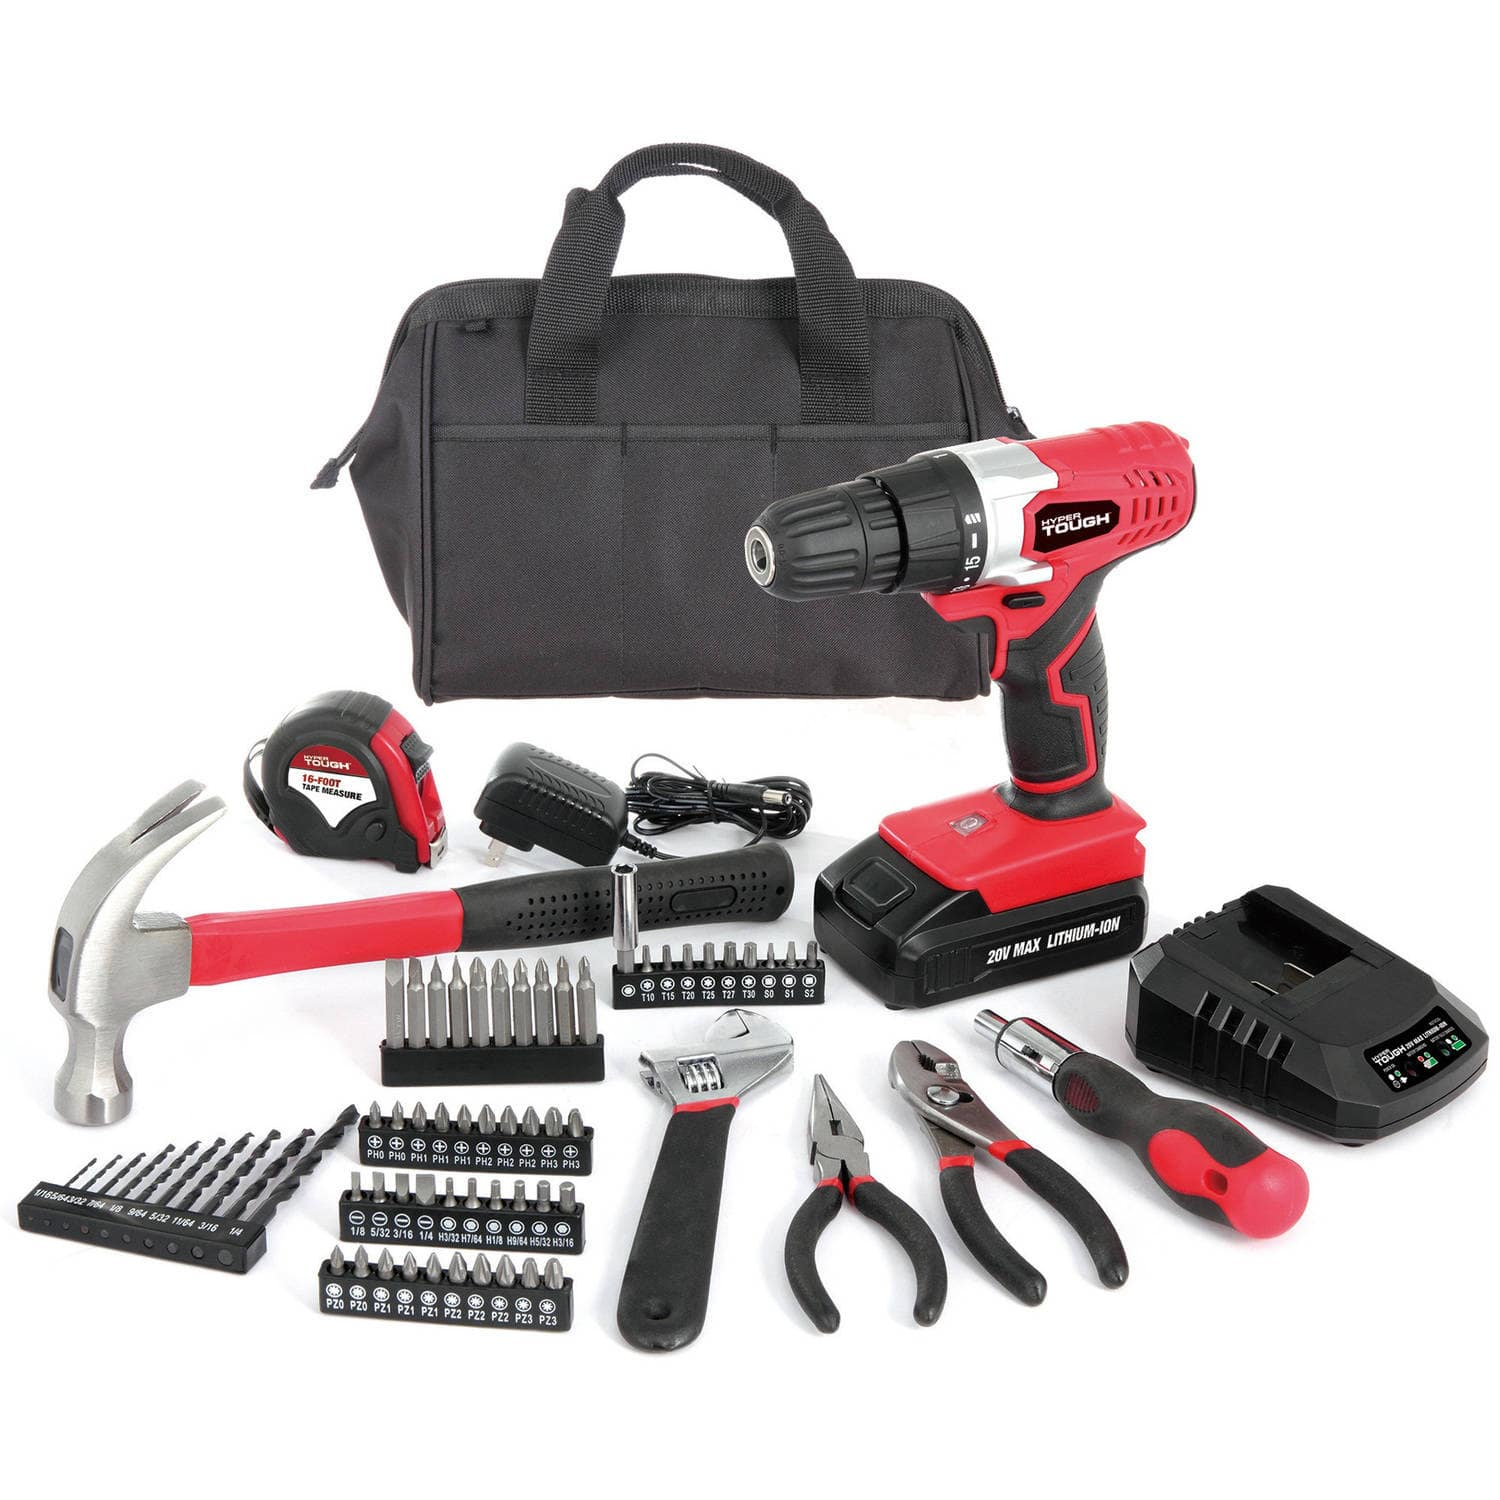 Hyper Tough 20V Drill with 70-Piece Project Tool Kit Set - Wal-Mart $9 Clearance YMMV